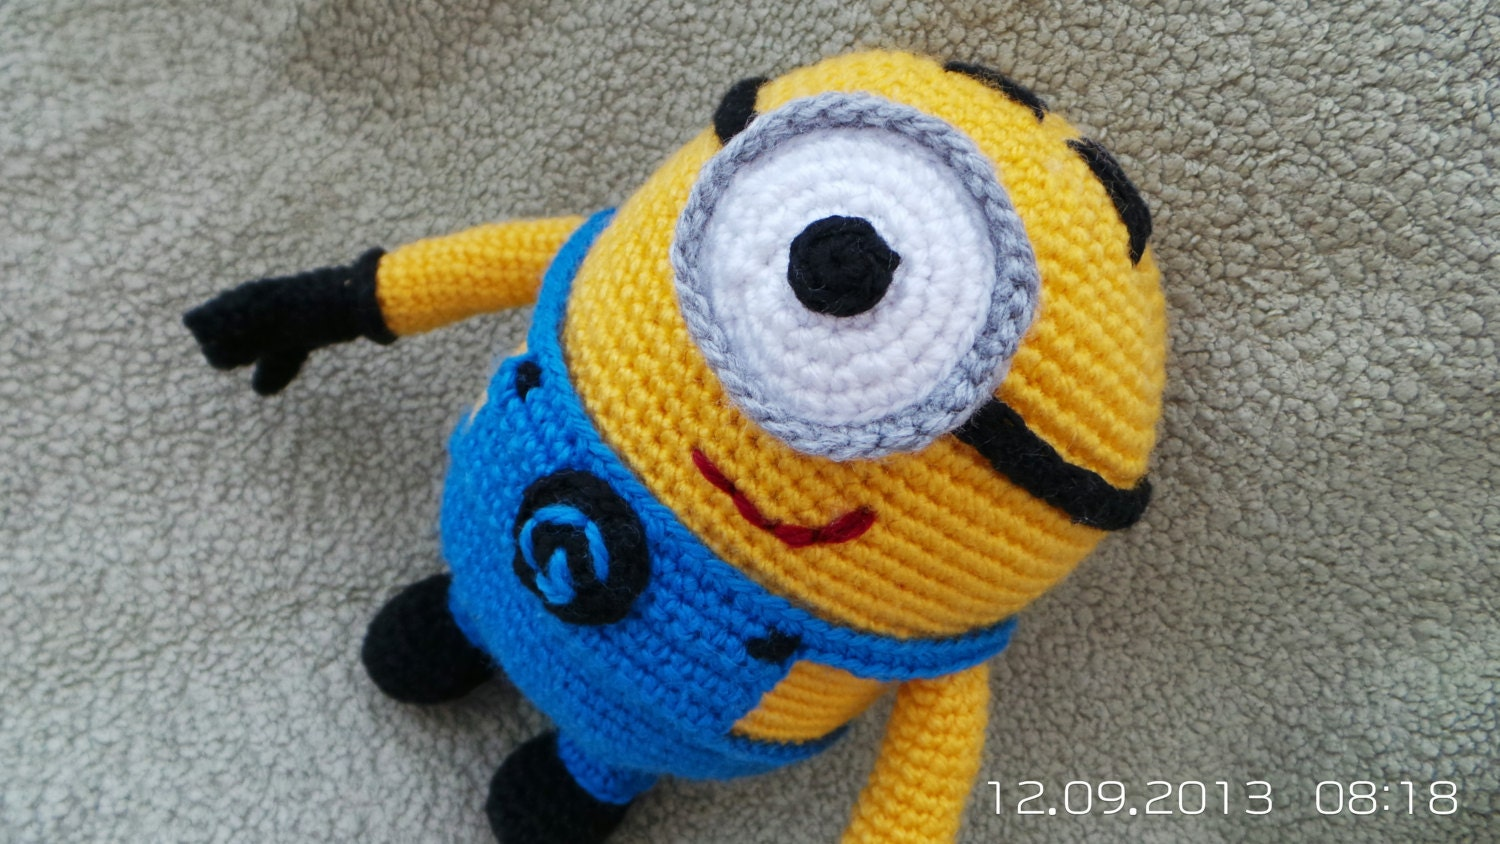 Free Crochet Pattern For Minion Toy : Minion Despicable Me Crochet amigurumi doll toy by ...